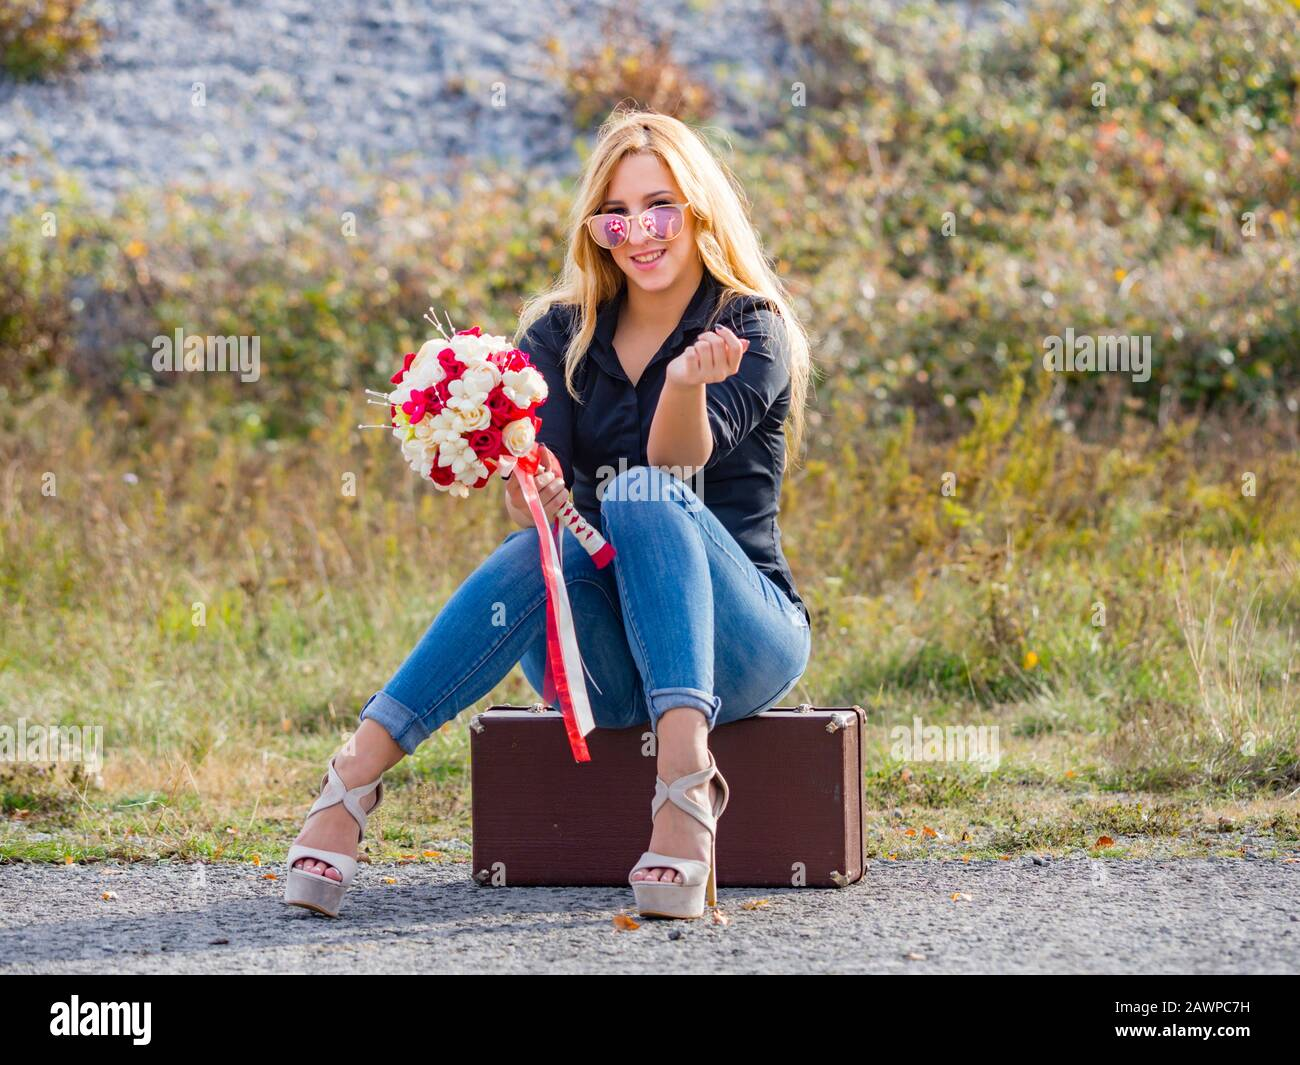 Teen girl sitting on boxy baggage case denim pants legs heels hand holding flowery bouquet looking at camera slight smile Stock Photo